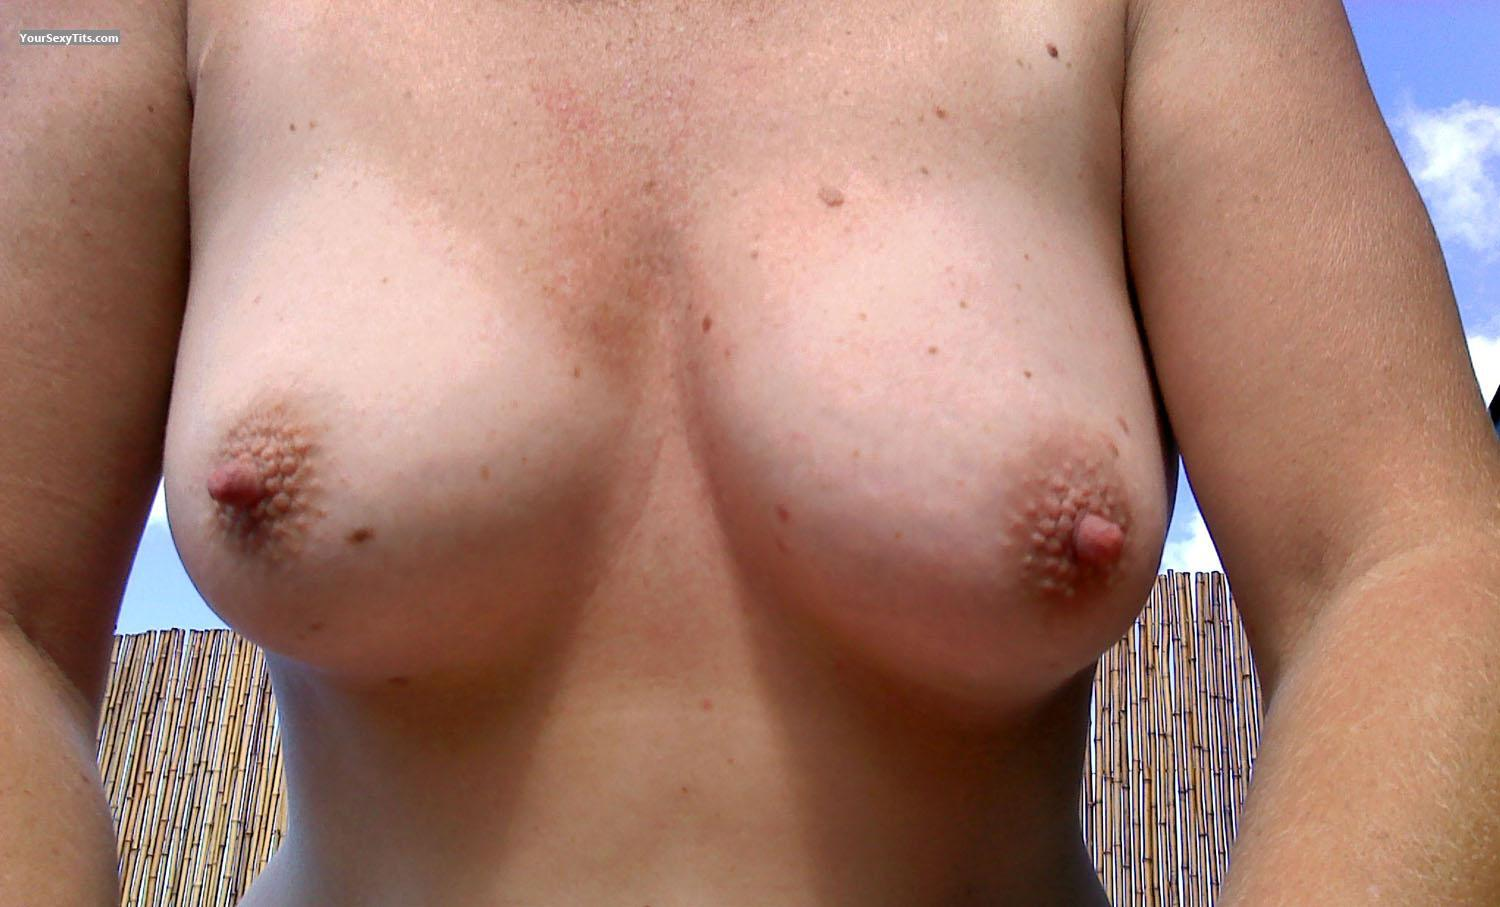 Tit Flash: Medium Tits - Maggie from United States